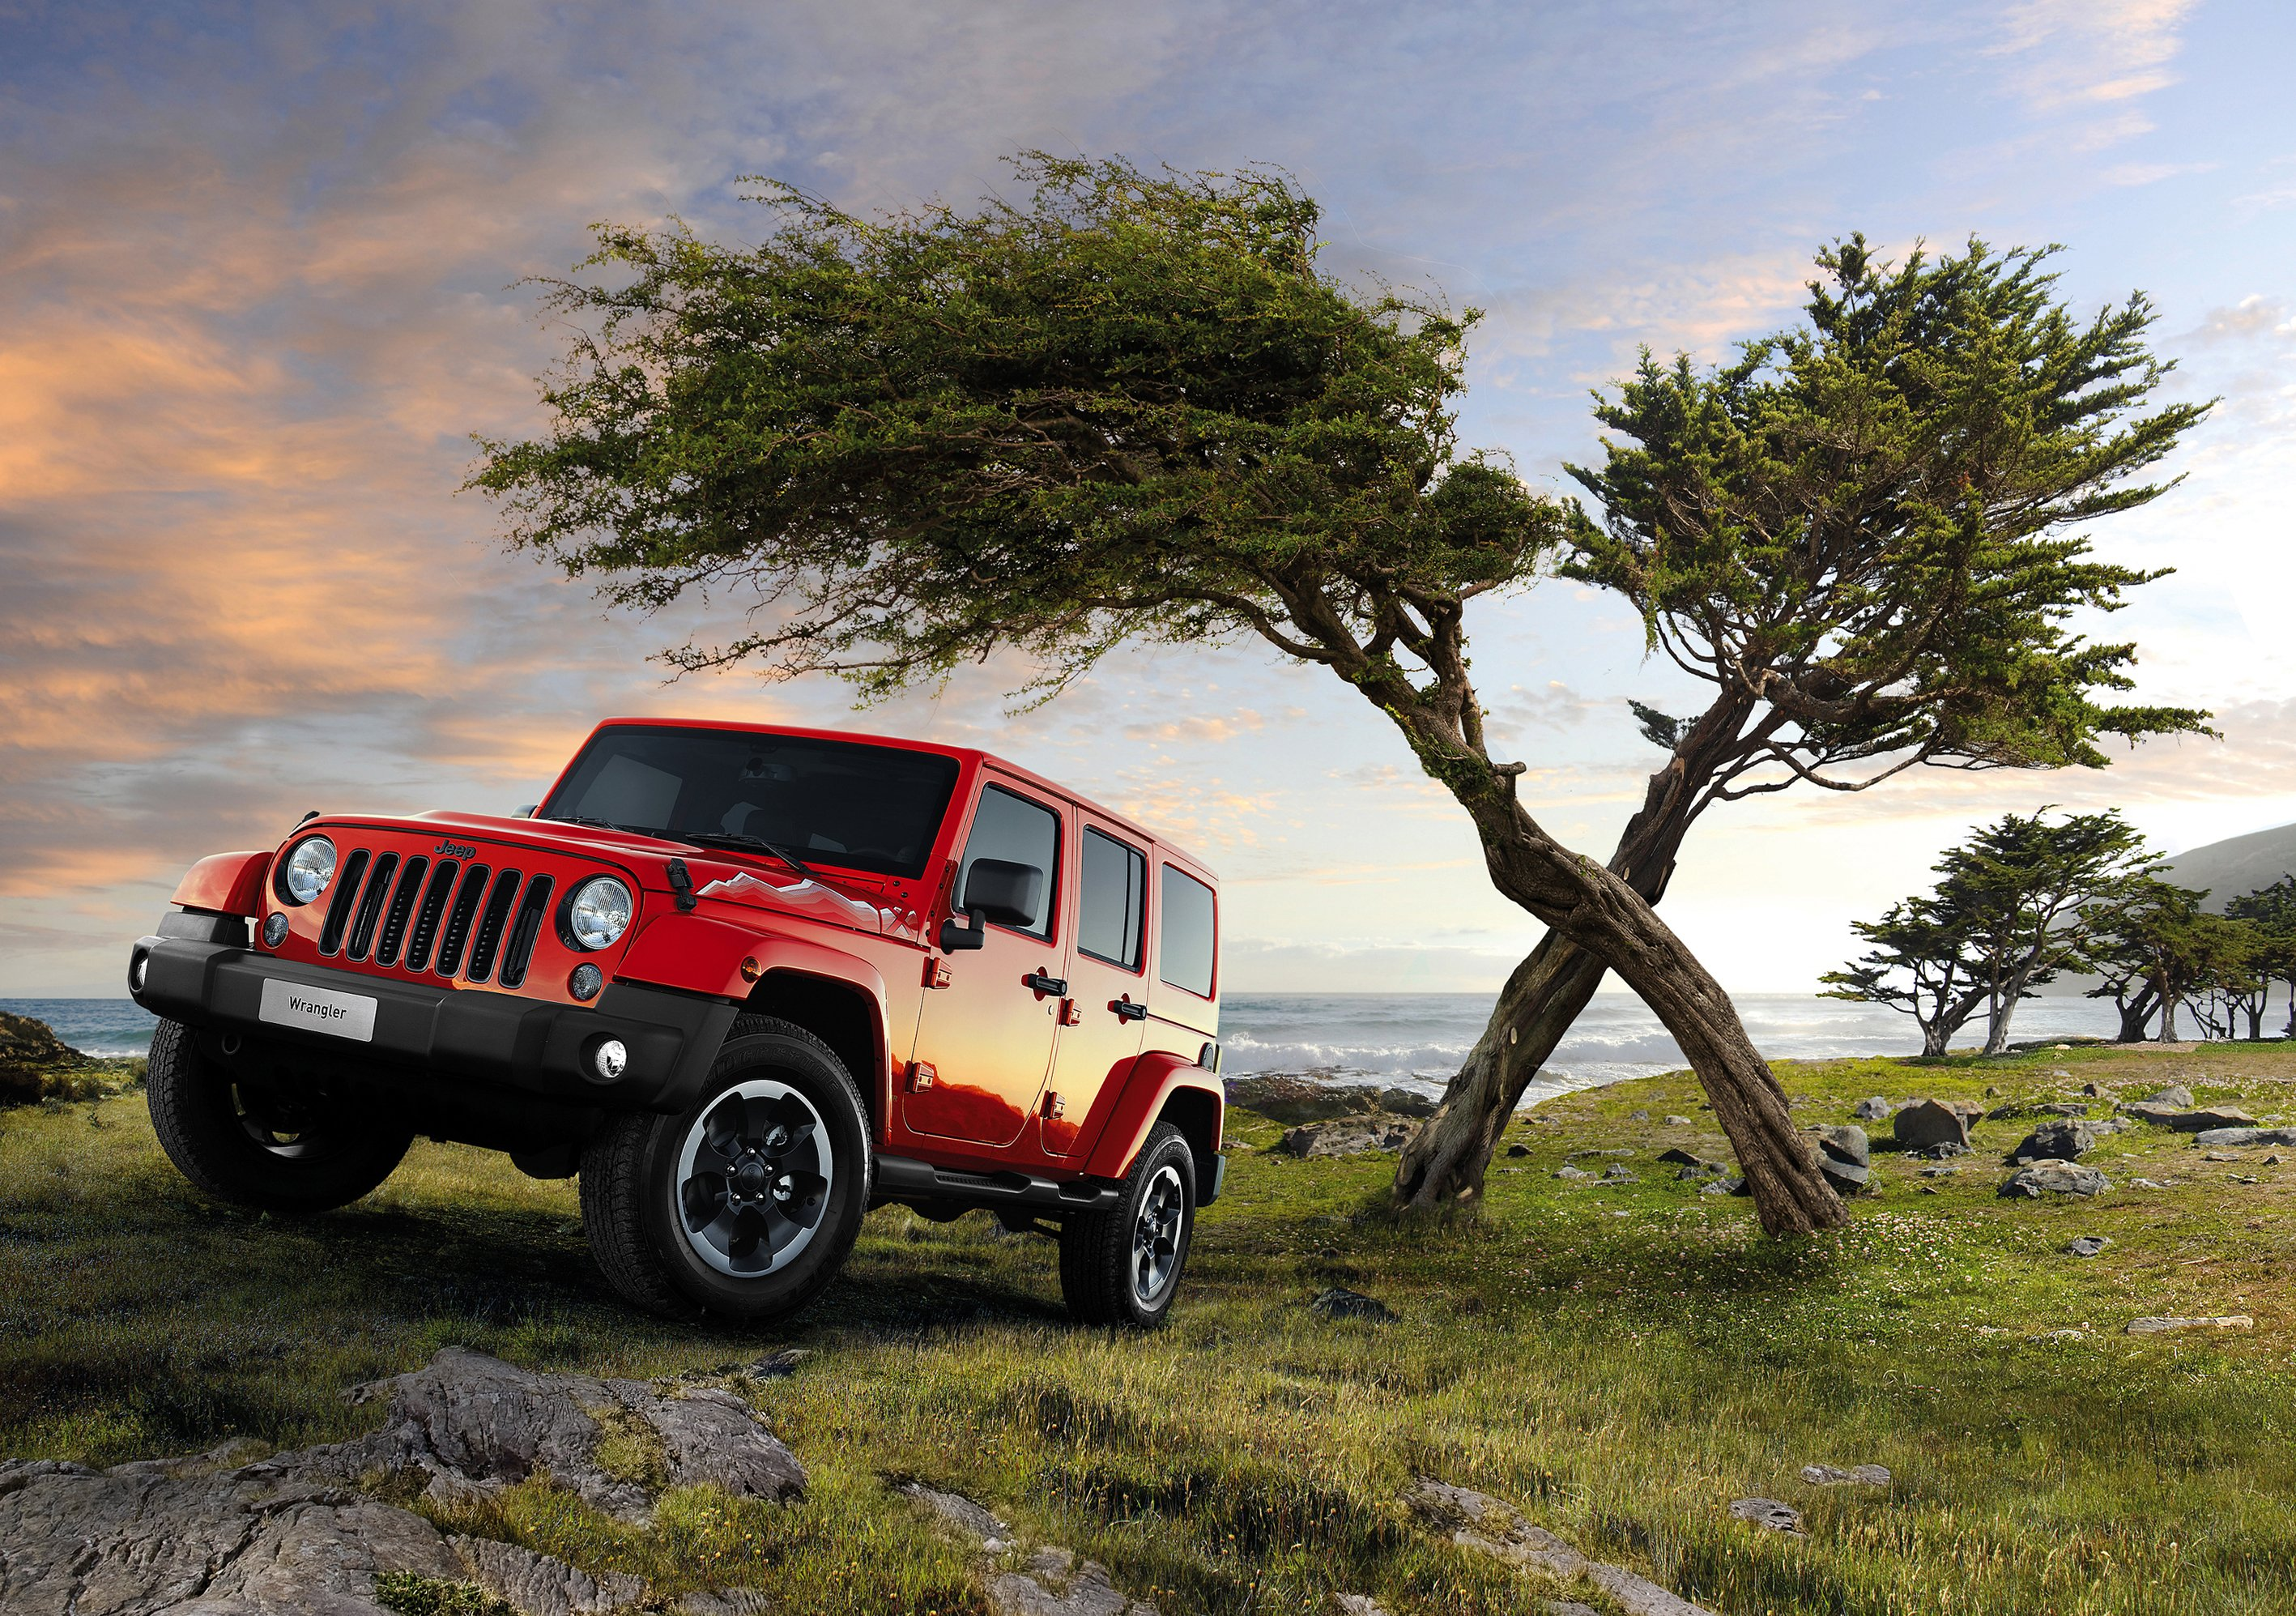 jeep-wrangler-unlimited-x-eu-spec-wallpapers-hd | wallpaper.wiki